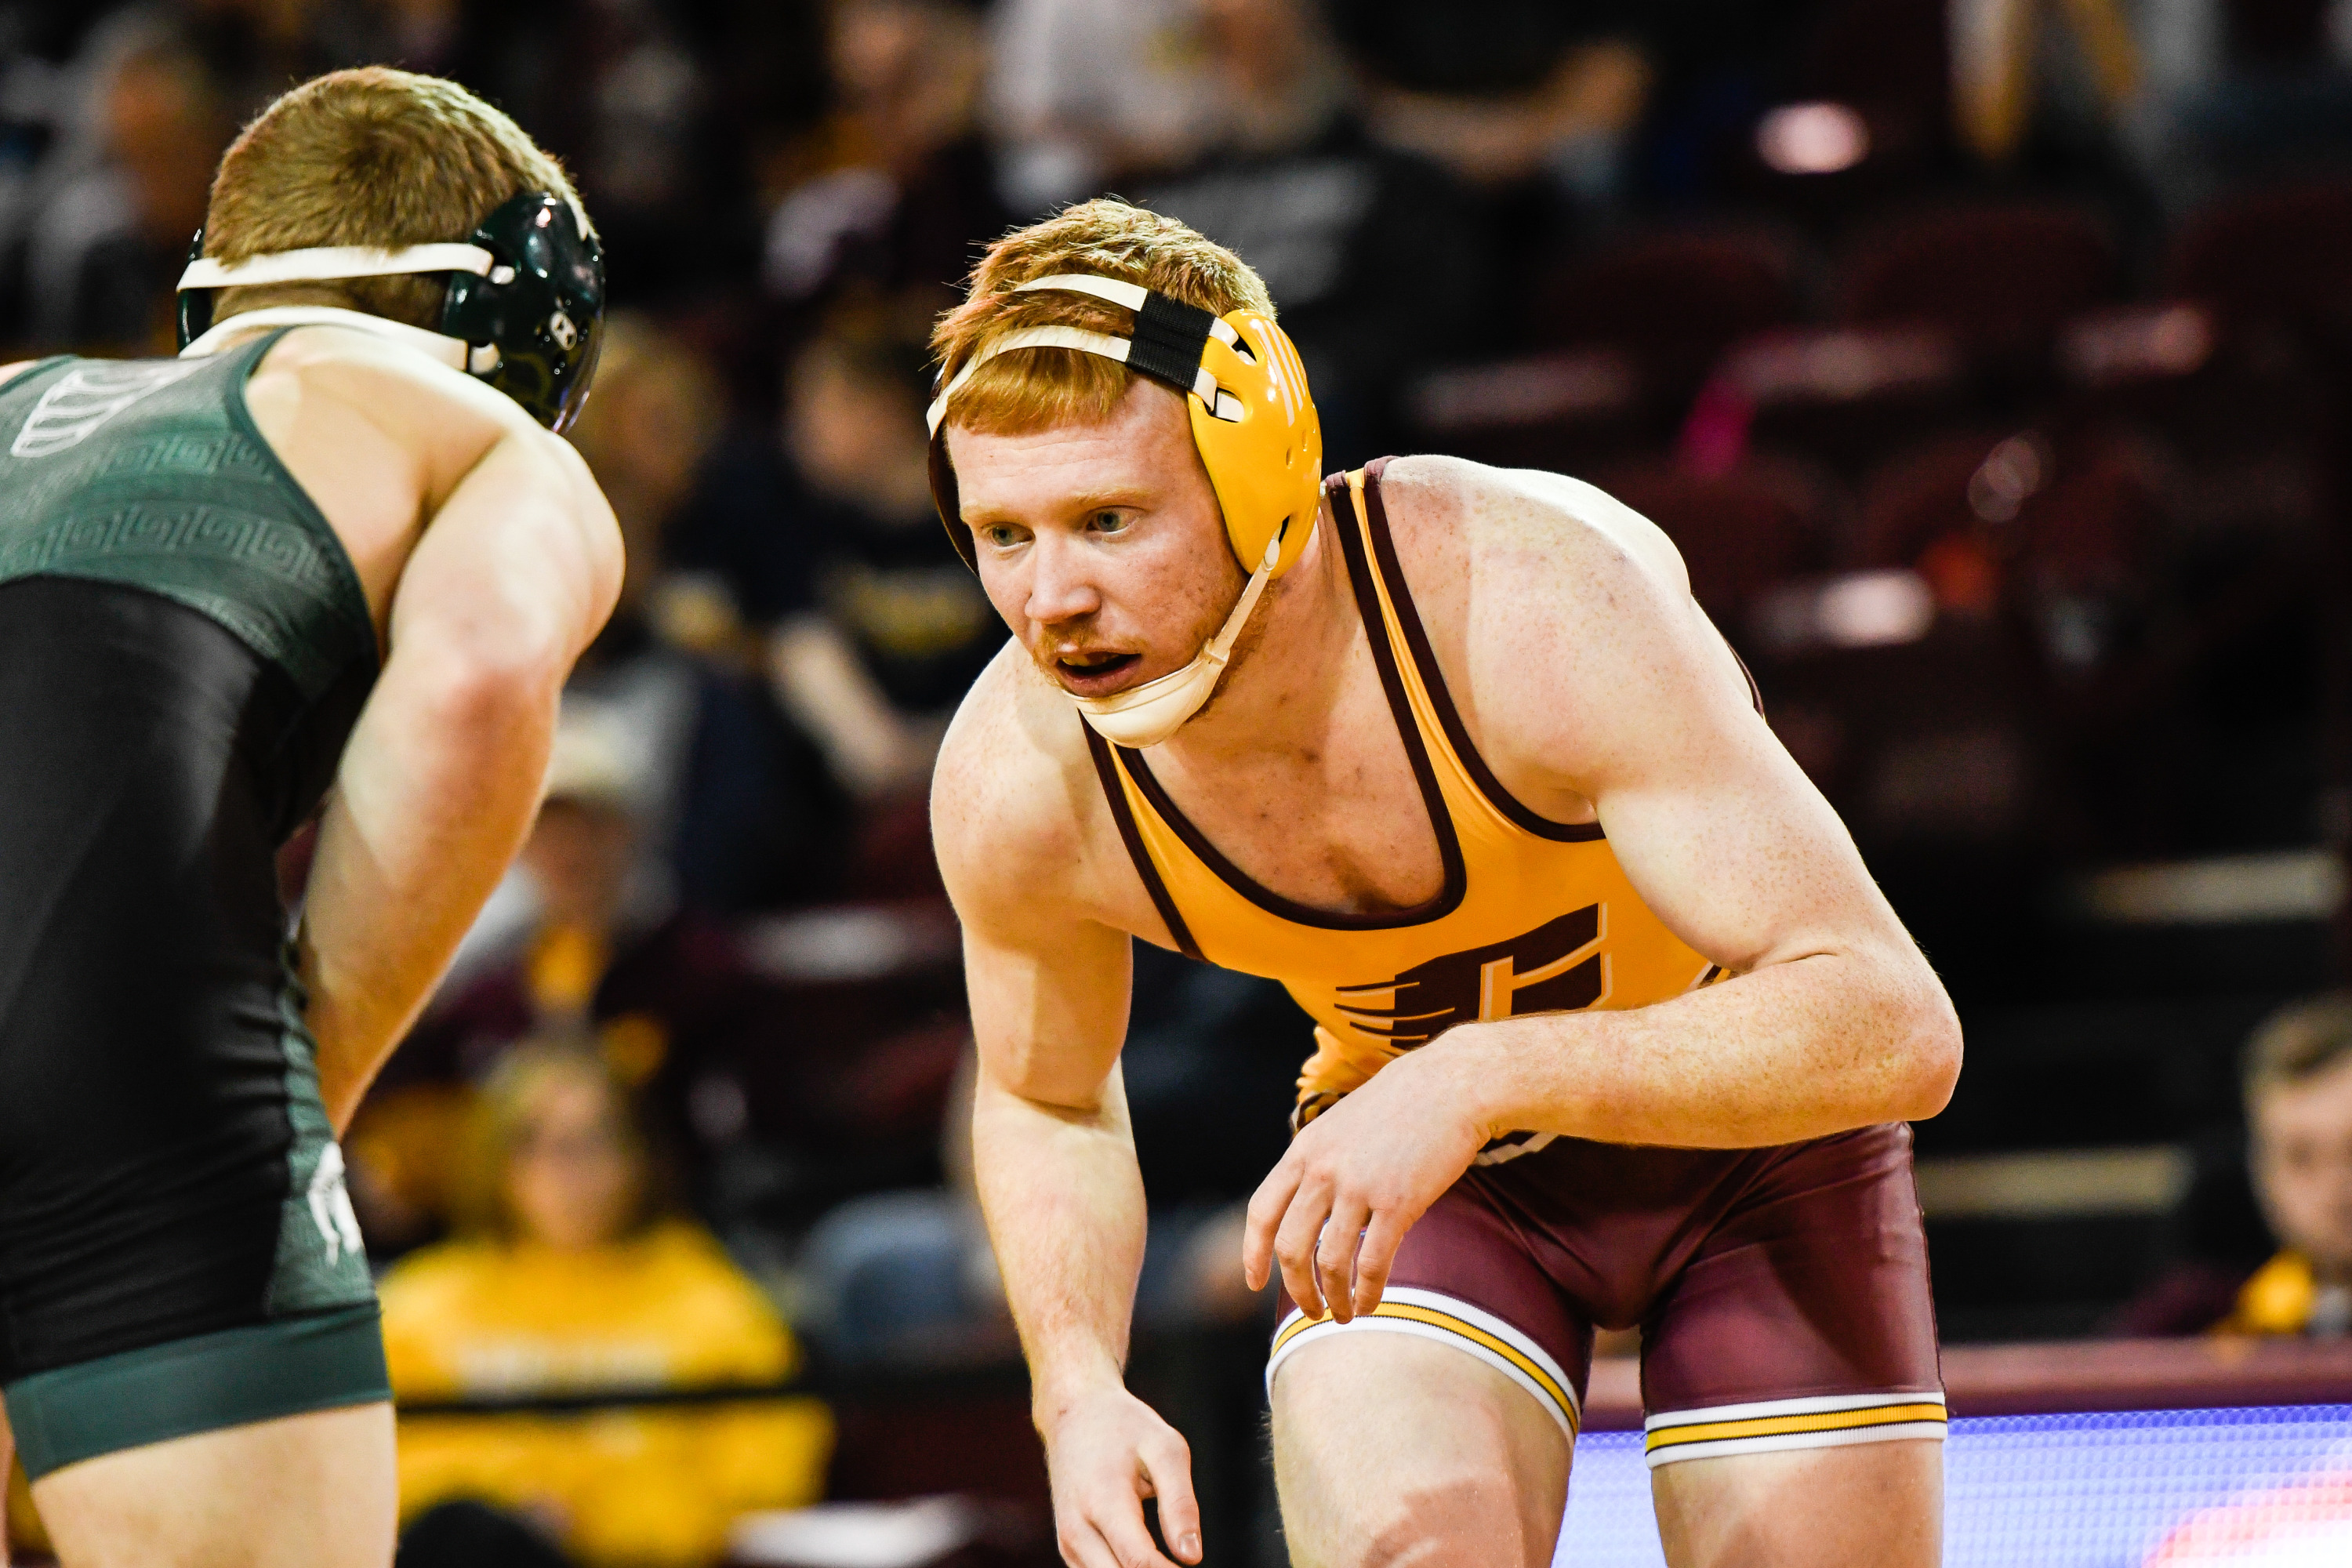 CMU junior Justin Oliver (right) will wrestle on Saturday morning for a spot in